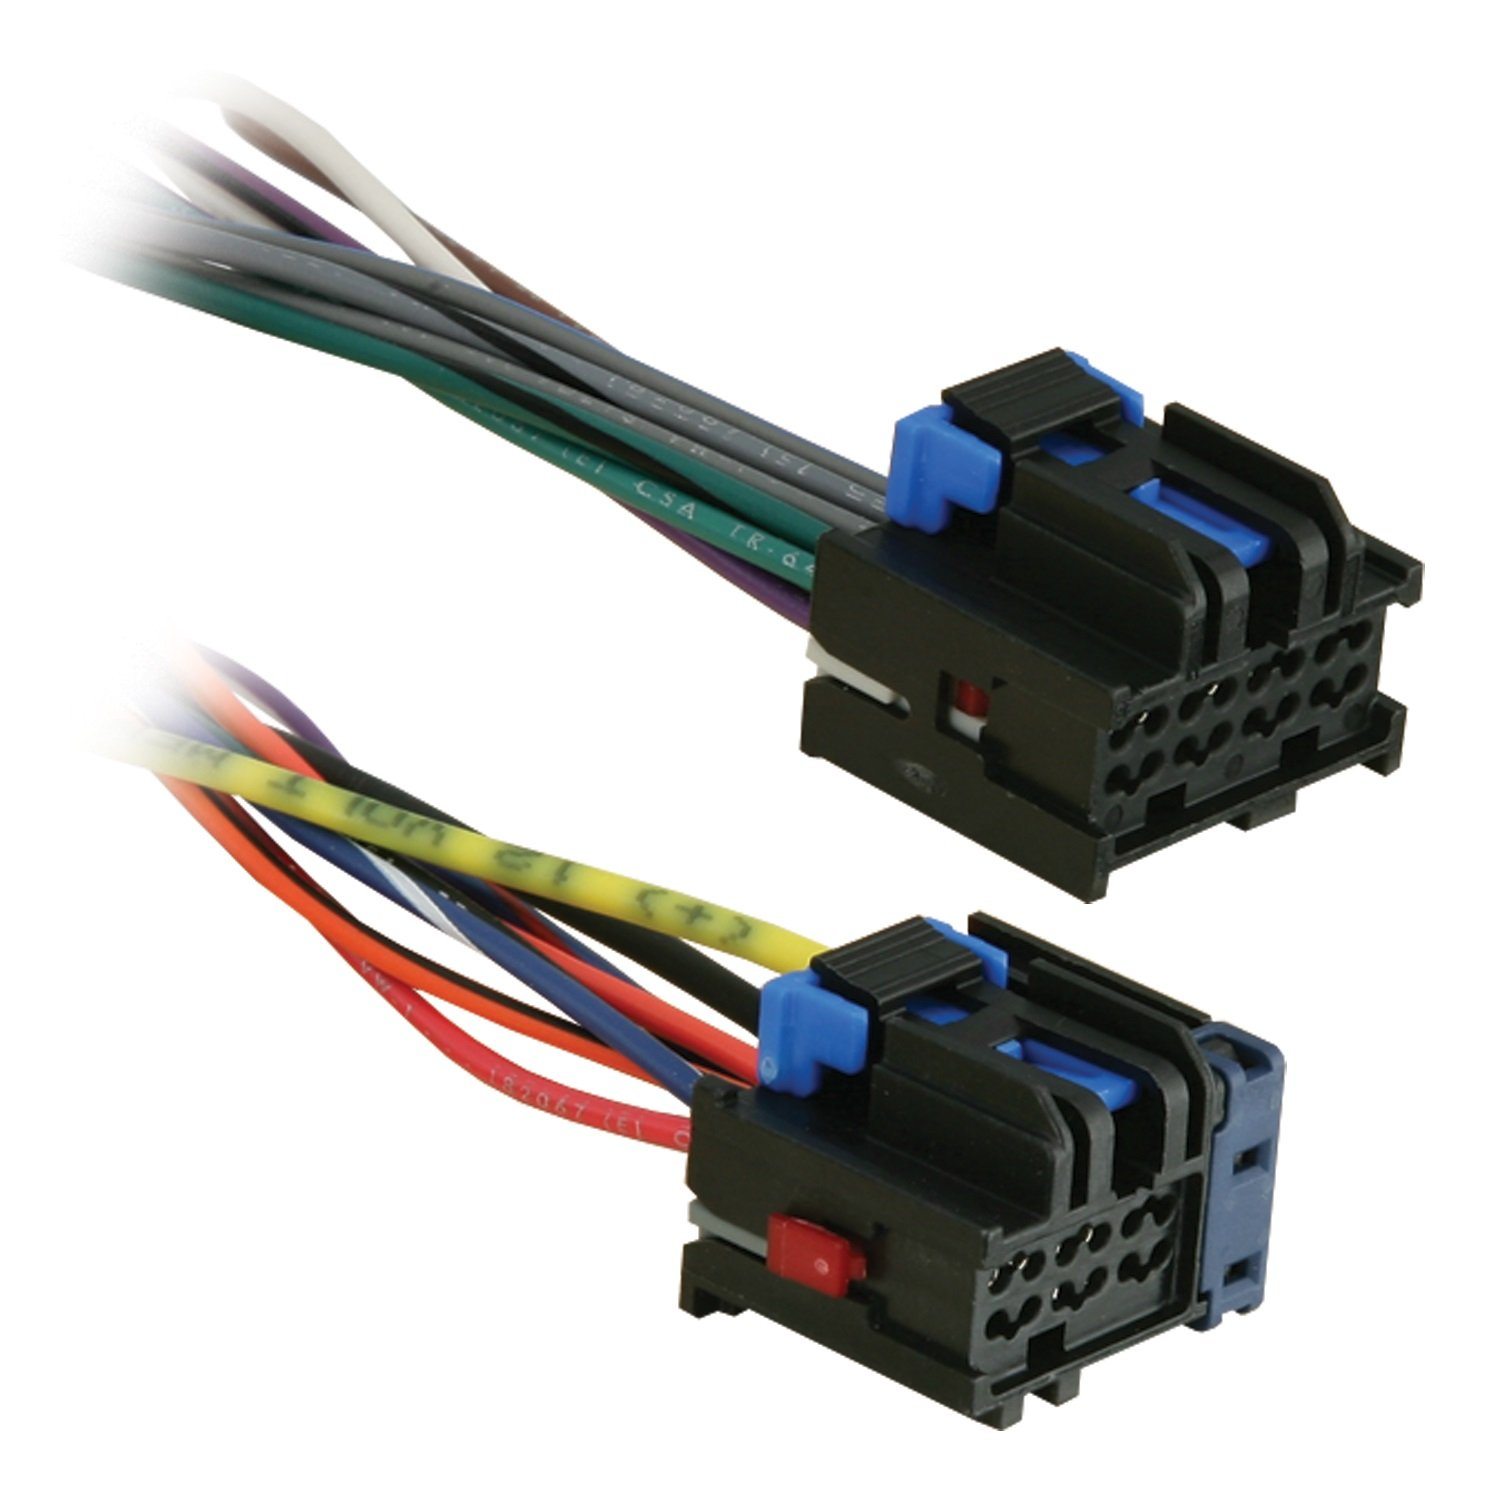 small resolution of metra reverse wiring harness 71 7302 for select hyundai kia vehicles alpine stereo harness kia wiring harness